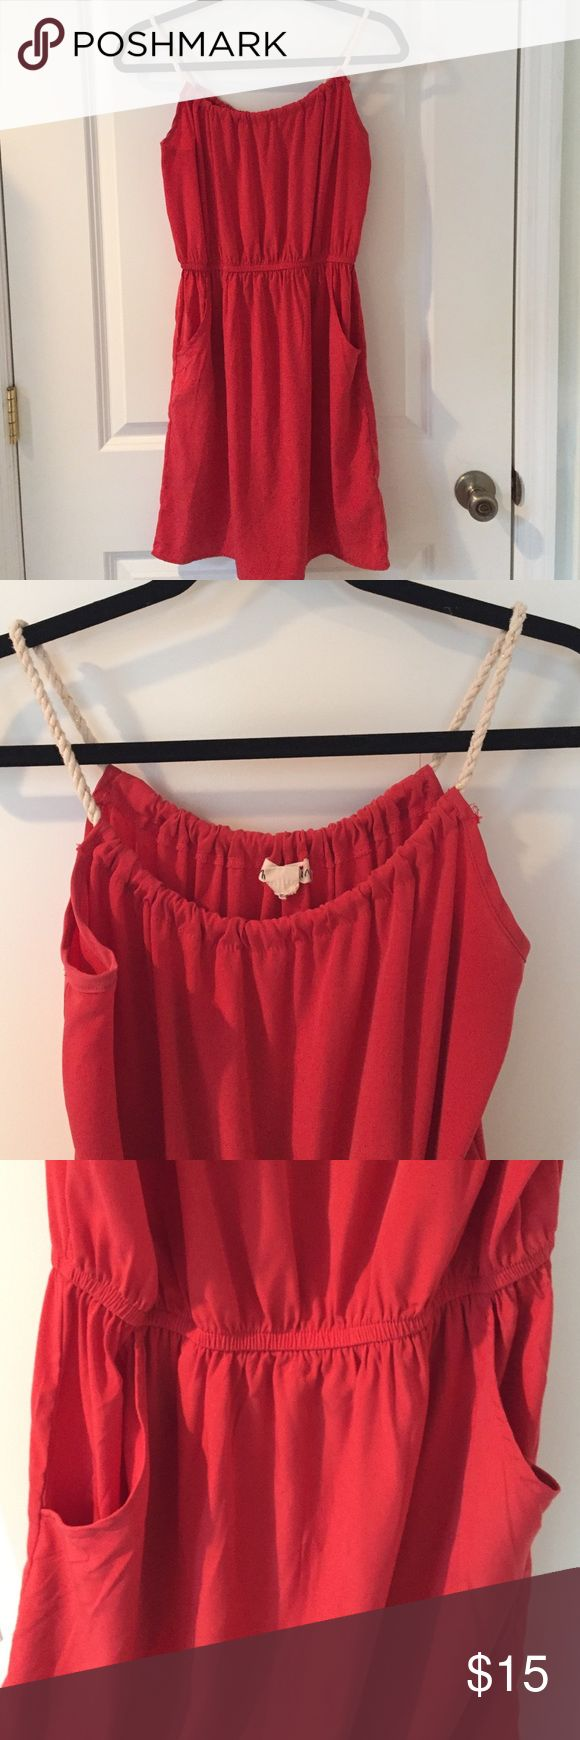 """Coral sundress Really cute coral dress that cinches at the waist for a flattering fit. Top has braided """"rope"""" detail and the dress has pockets. Looks really cute as a swimsuit coverup too! Dresses"""